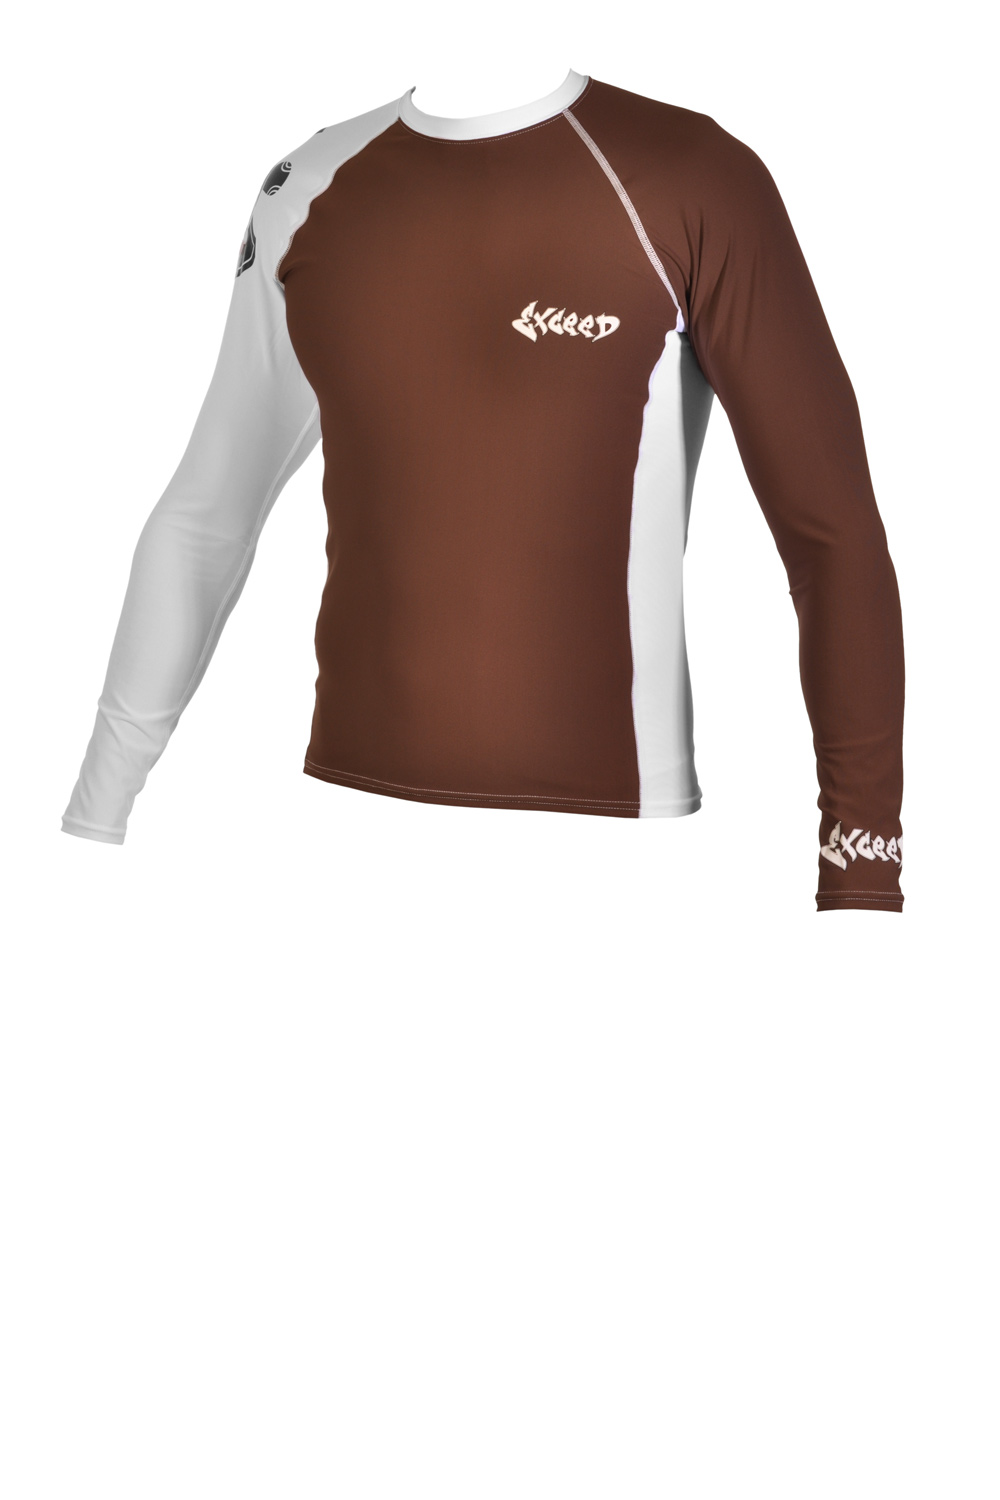 Exceed Expedition Mens Long Sleeve Rash Guard